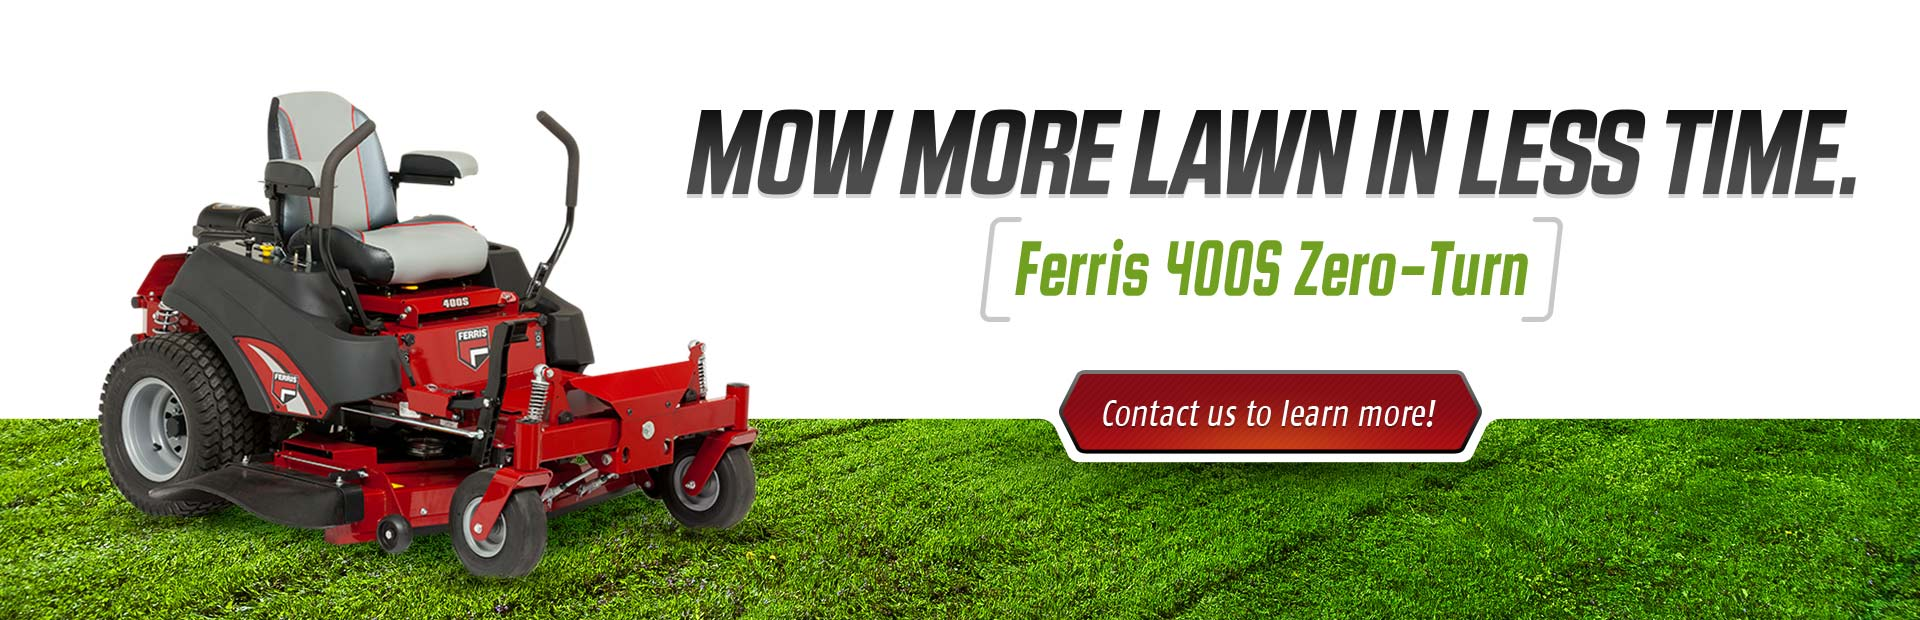 Mow more lawn in less time with the Ferris 400S zero-turn. Contact us to learn more!